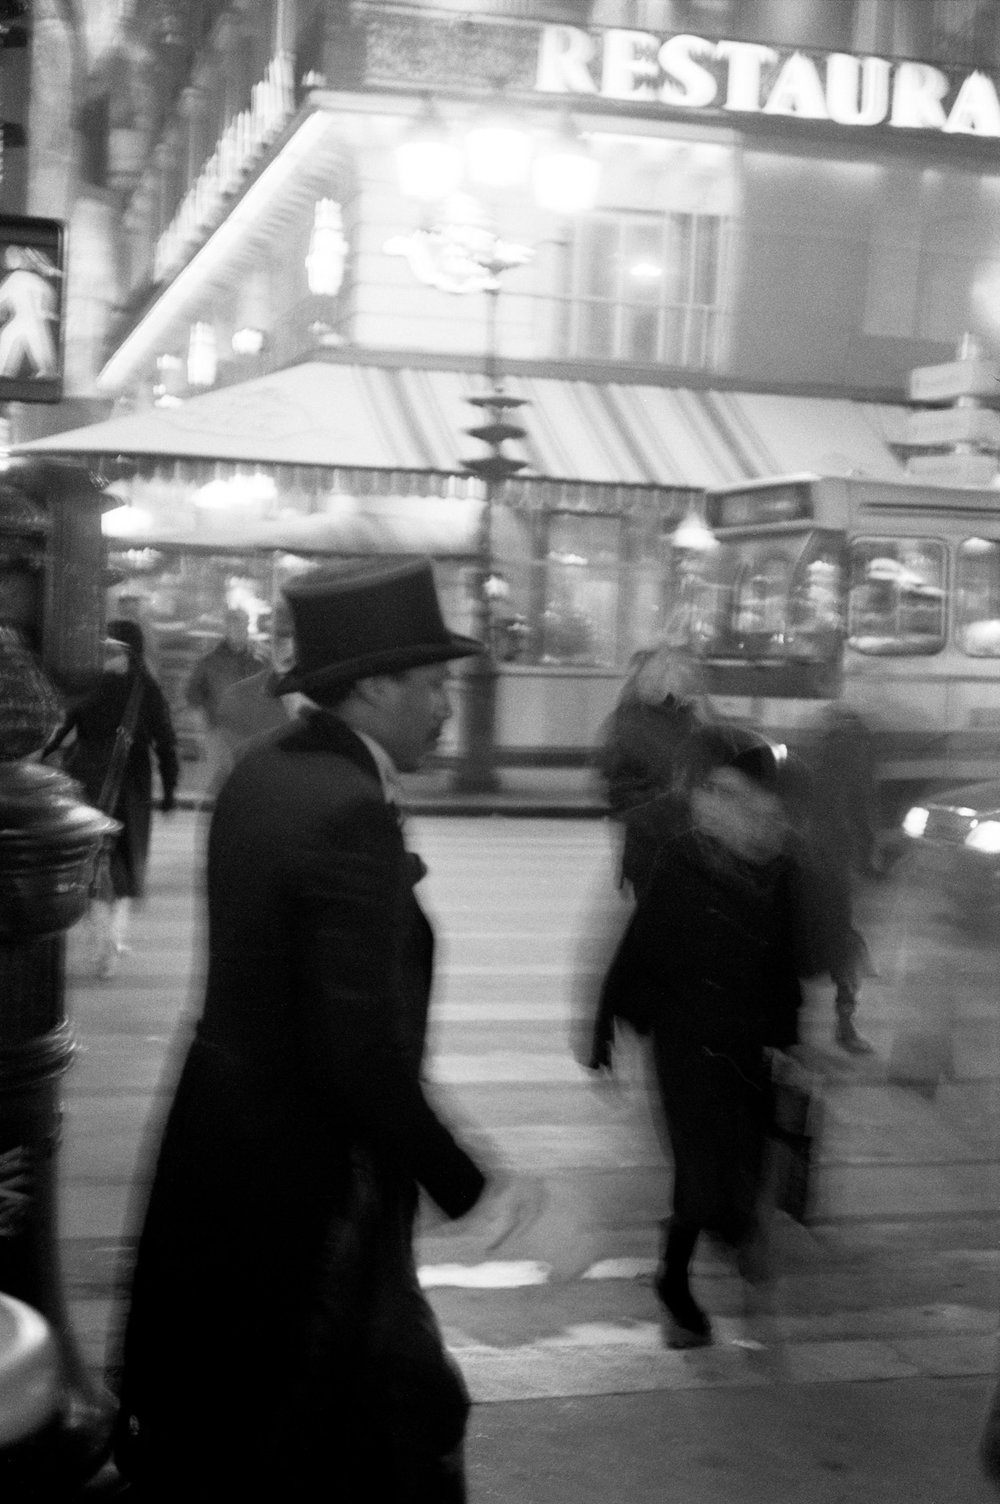 Mann mit Hut, Place de l' Opéra, Paris 1989 Man with hat, Place de l' Opéra, Paris 1989, © Jörg Rubbert